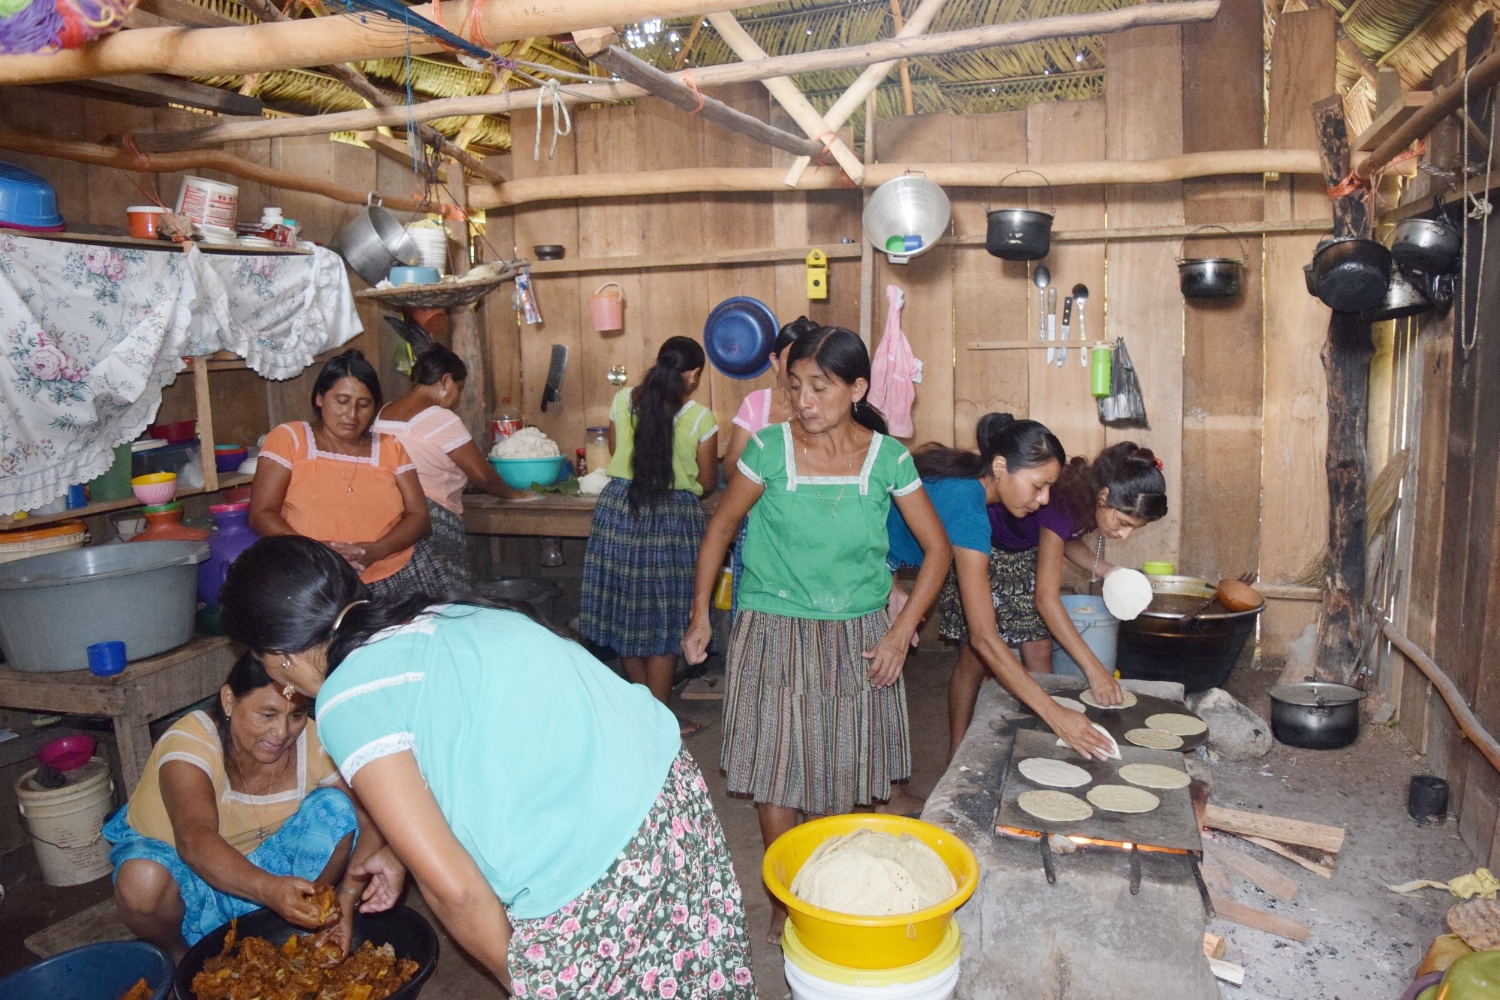 In the busy kitchen of Luciya Coc, community members help make a mountain of tortillas to feed everyone who helps build the new home - p  hoto by Robin McCarthy